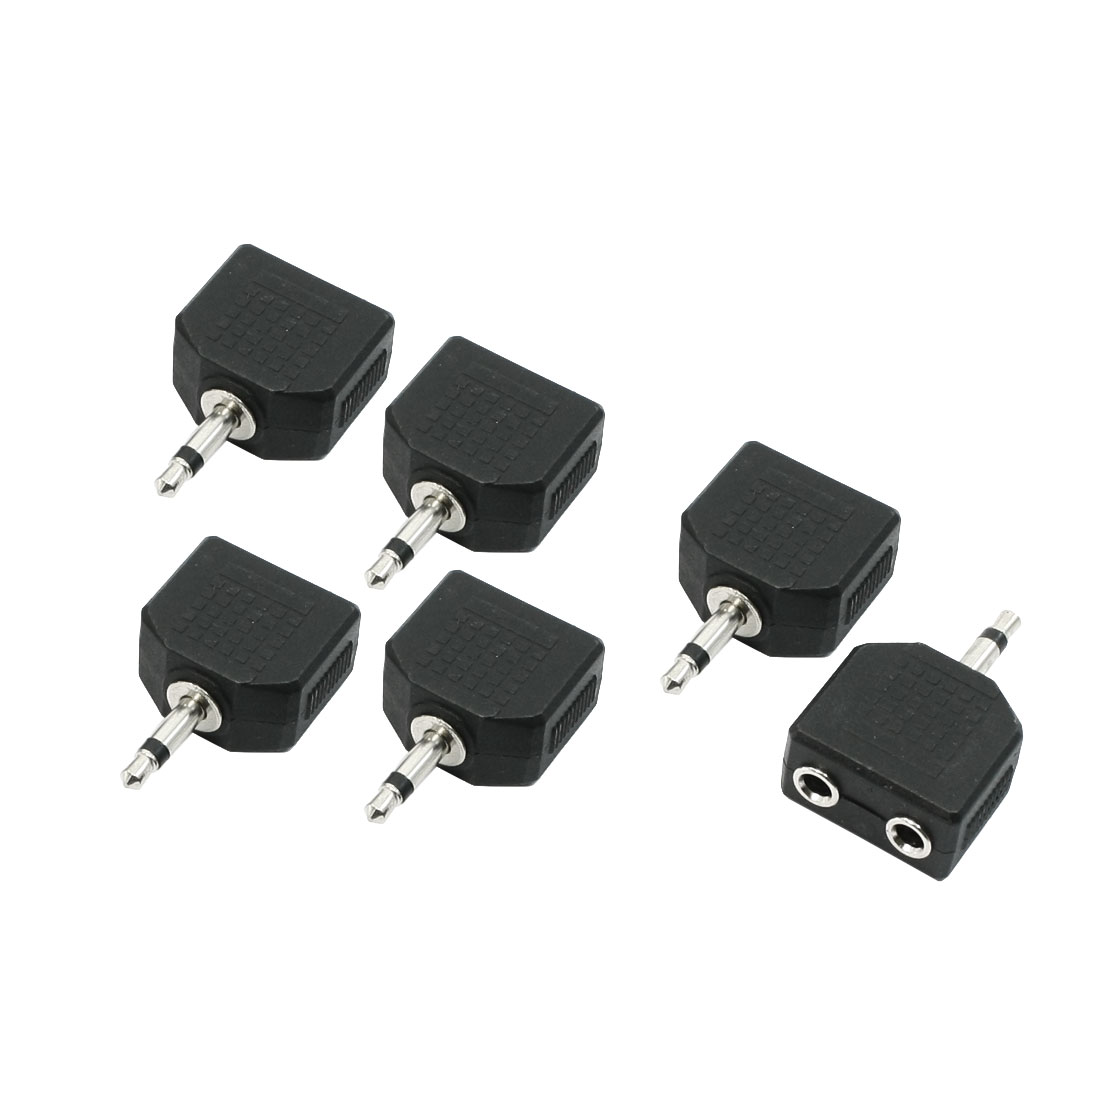 6 Pieces 3.5mm Mono Audio Plug to 2 Port 3.5mm Jack Splitters Adapters